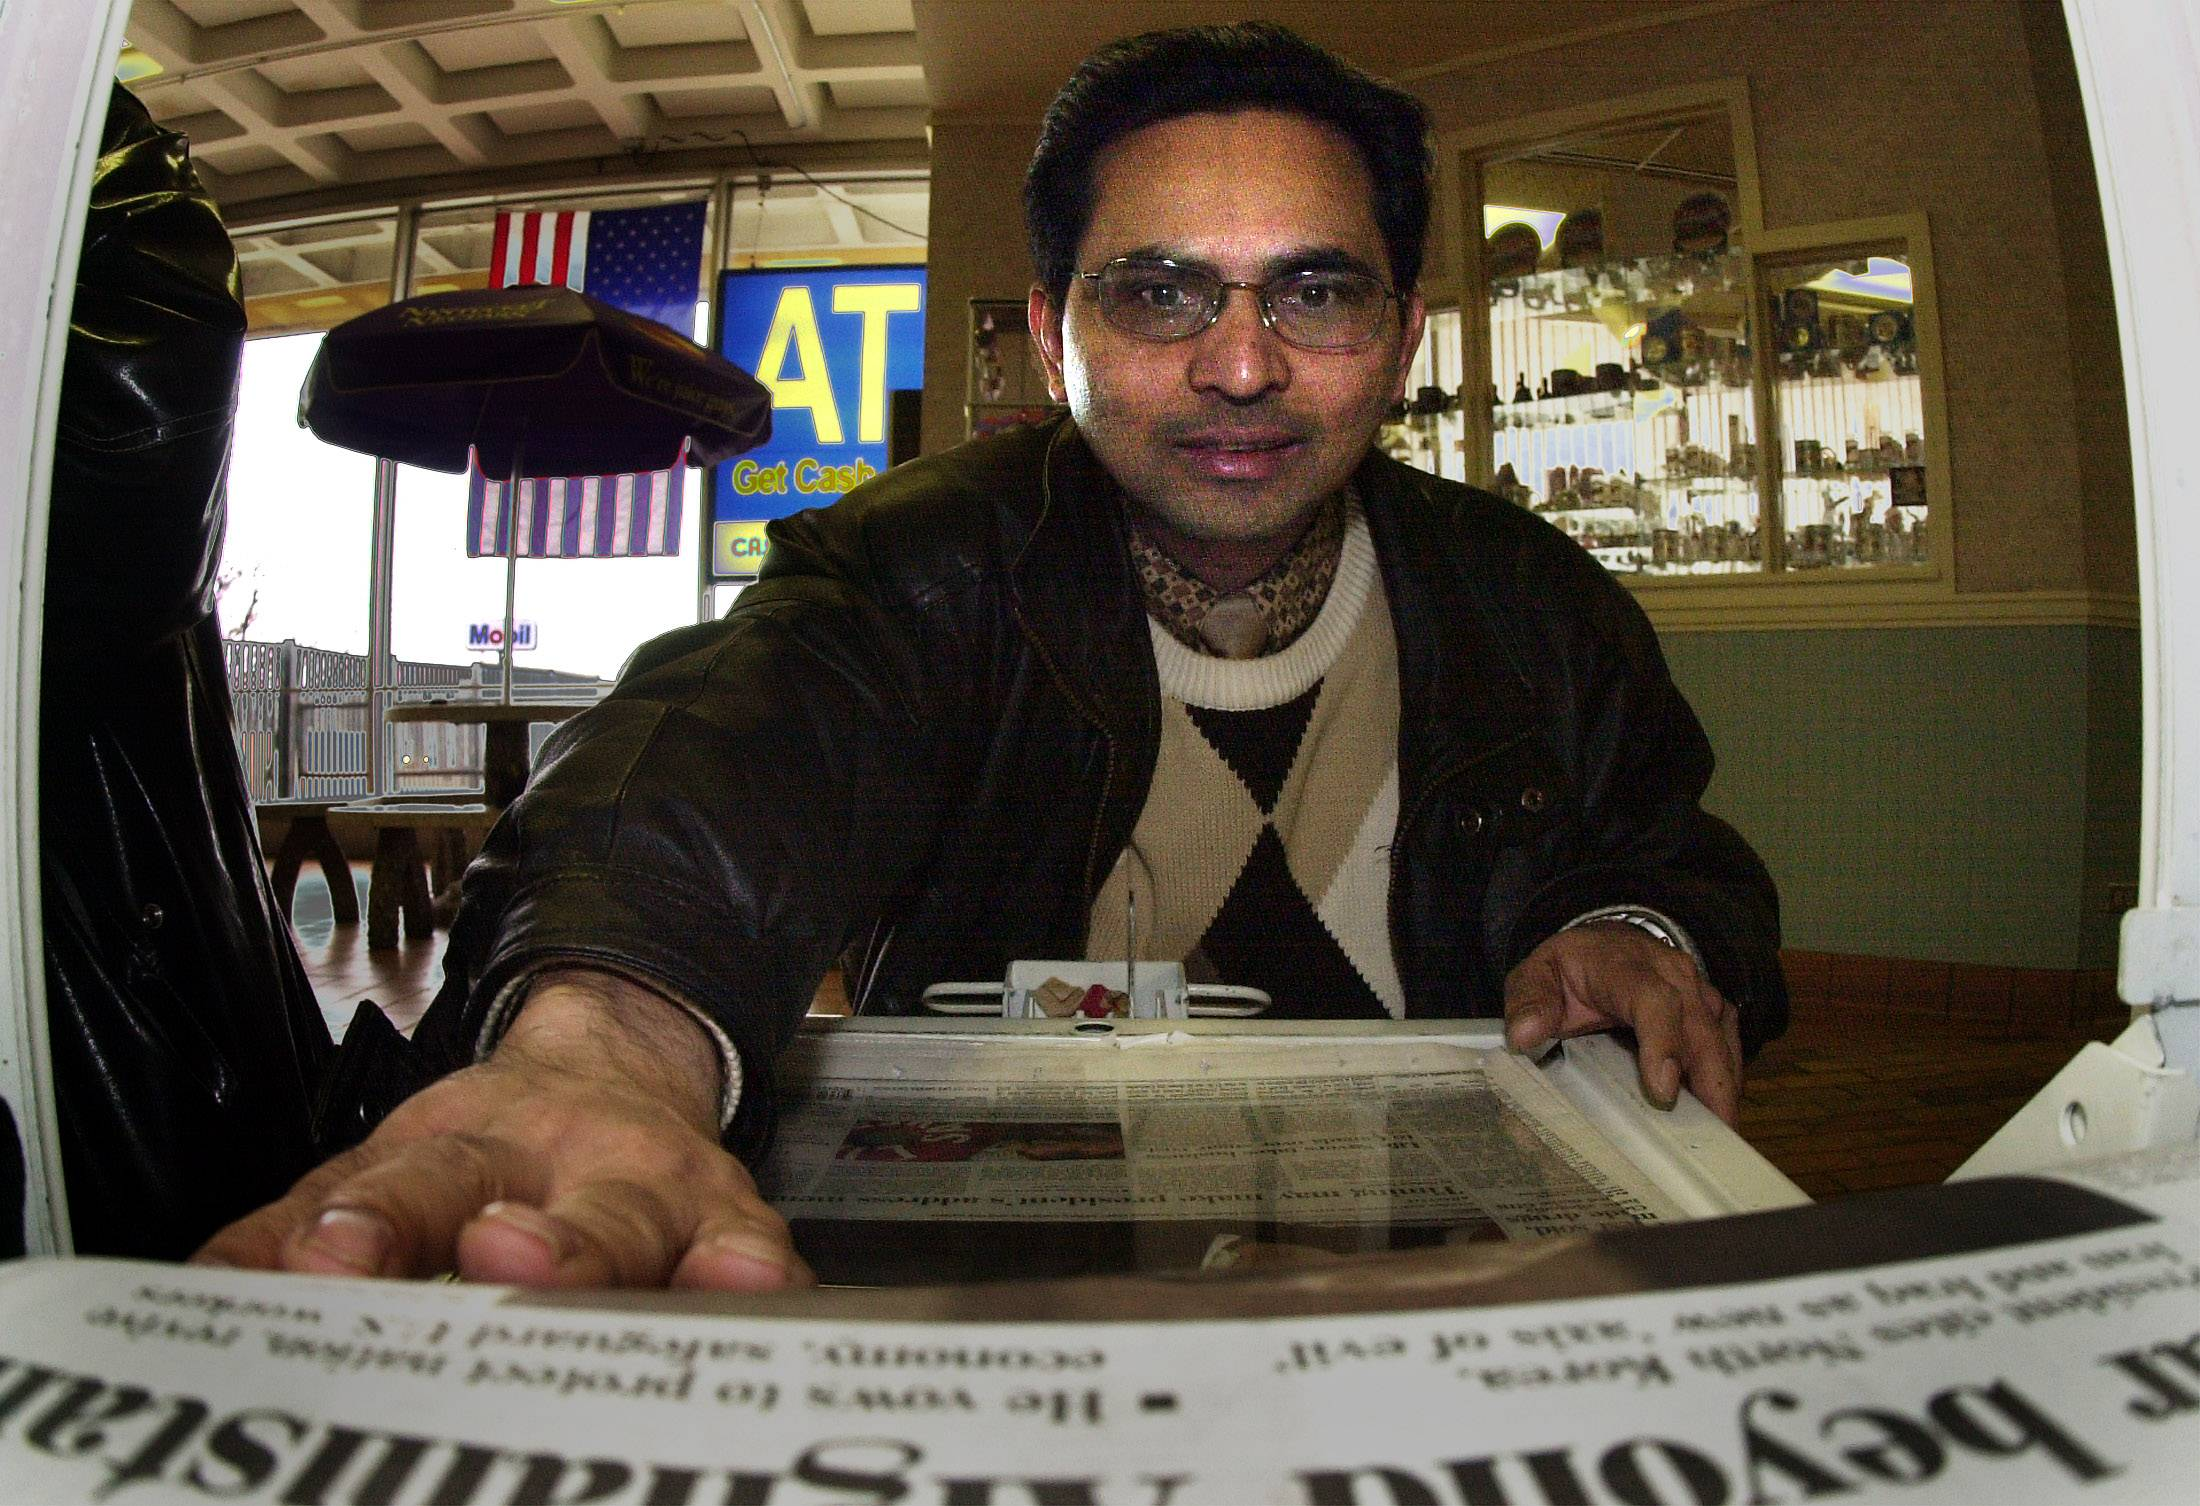 Arif Mohammed of Palatine grabs a newspaper from the newspaper box for his 12:30 lunch at the Des Plaines oasis.